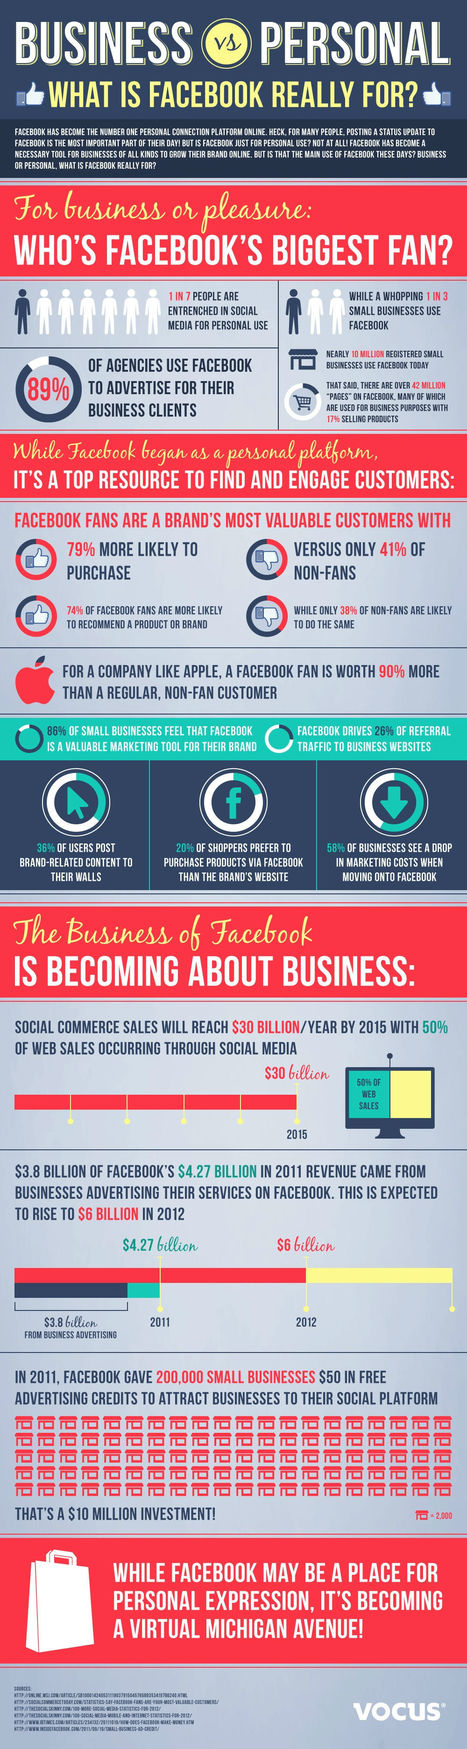 Why Sales on Social Media Will Be Huge By 2015 [INFOGRAPHIC] | Social Media (network, technology, blog, community, virtual reality, etc...) | Scoop.it